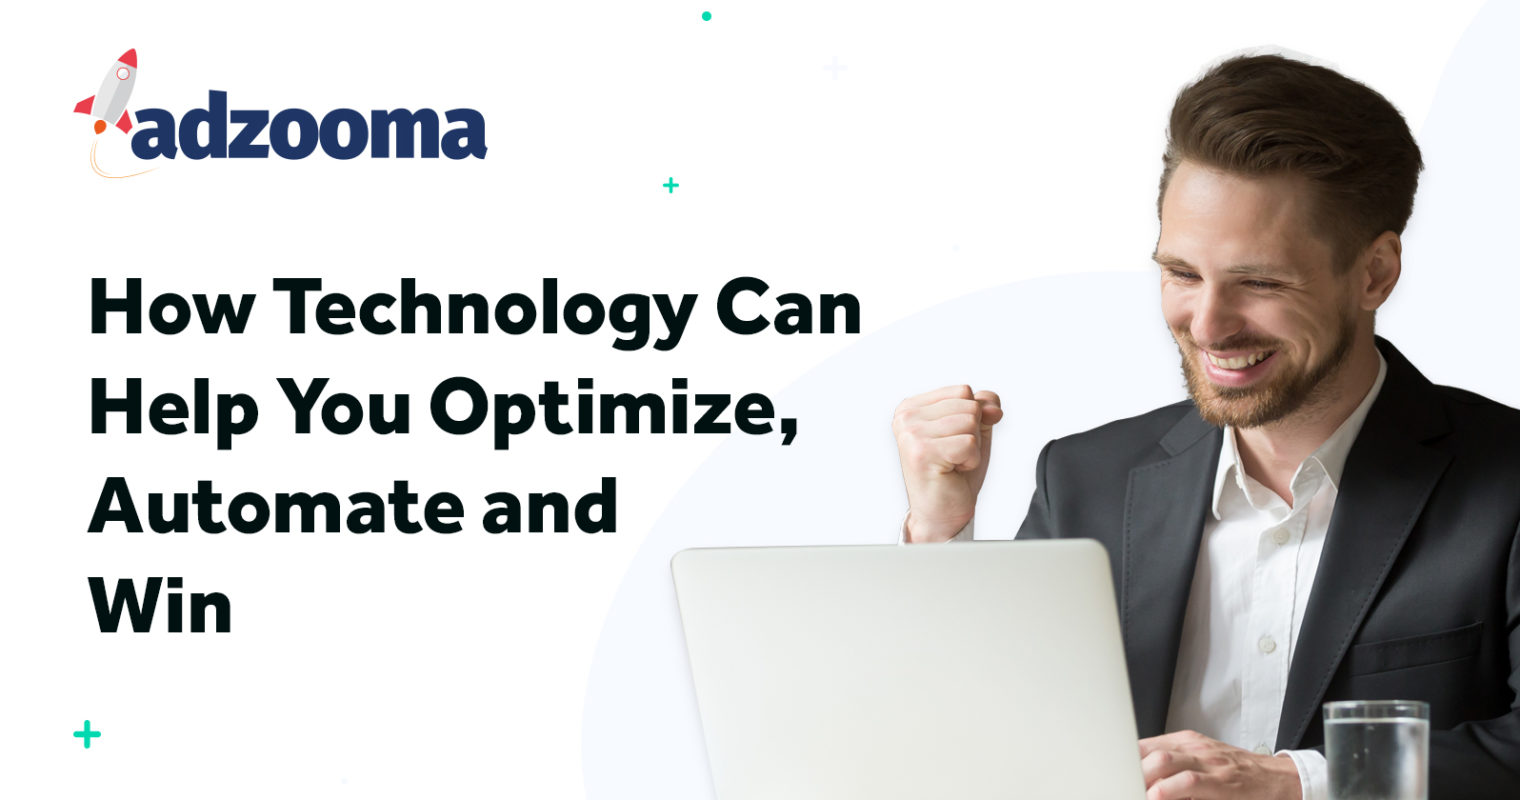 How to Use Technology to Optimize, Automate & Win